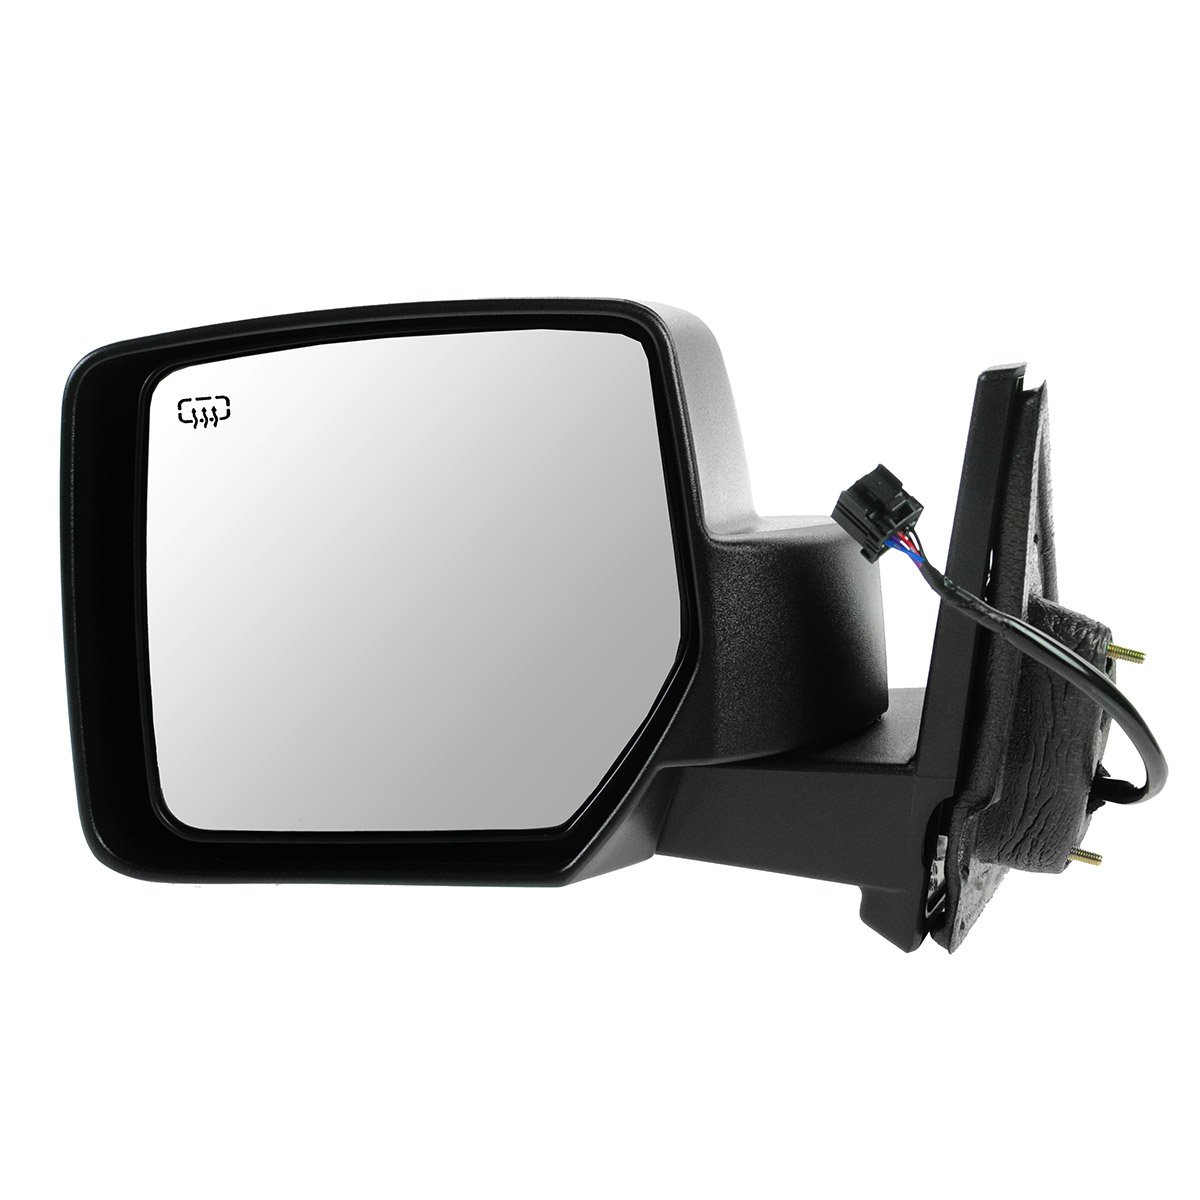 Mirror Power Heated Black Textured Driver Side Left LH for 07-15 Jeep Patriot 1A Auto